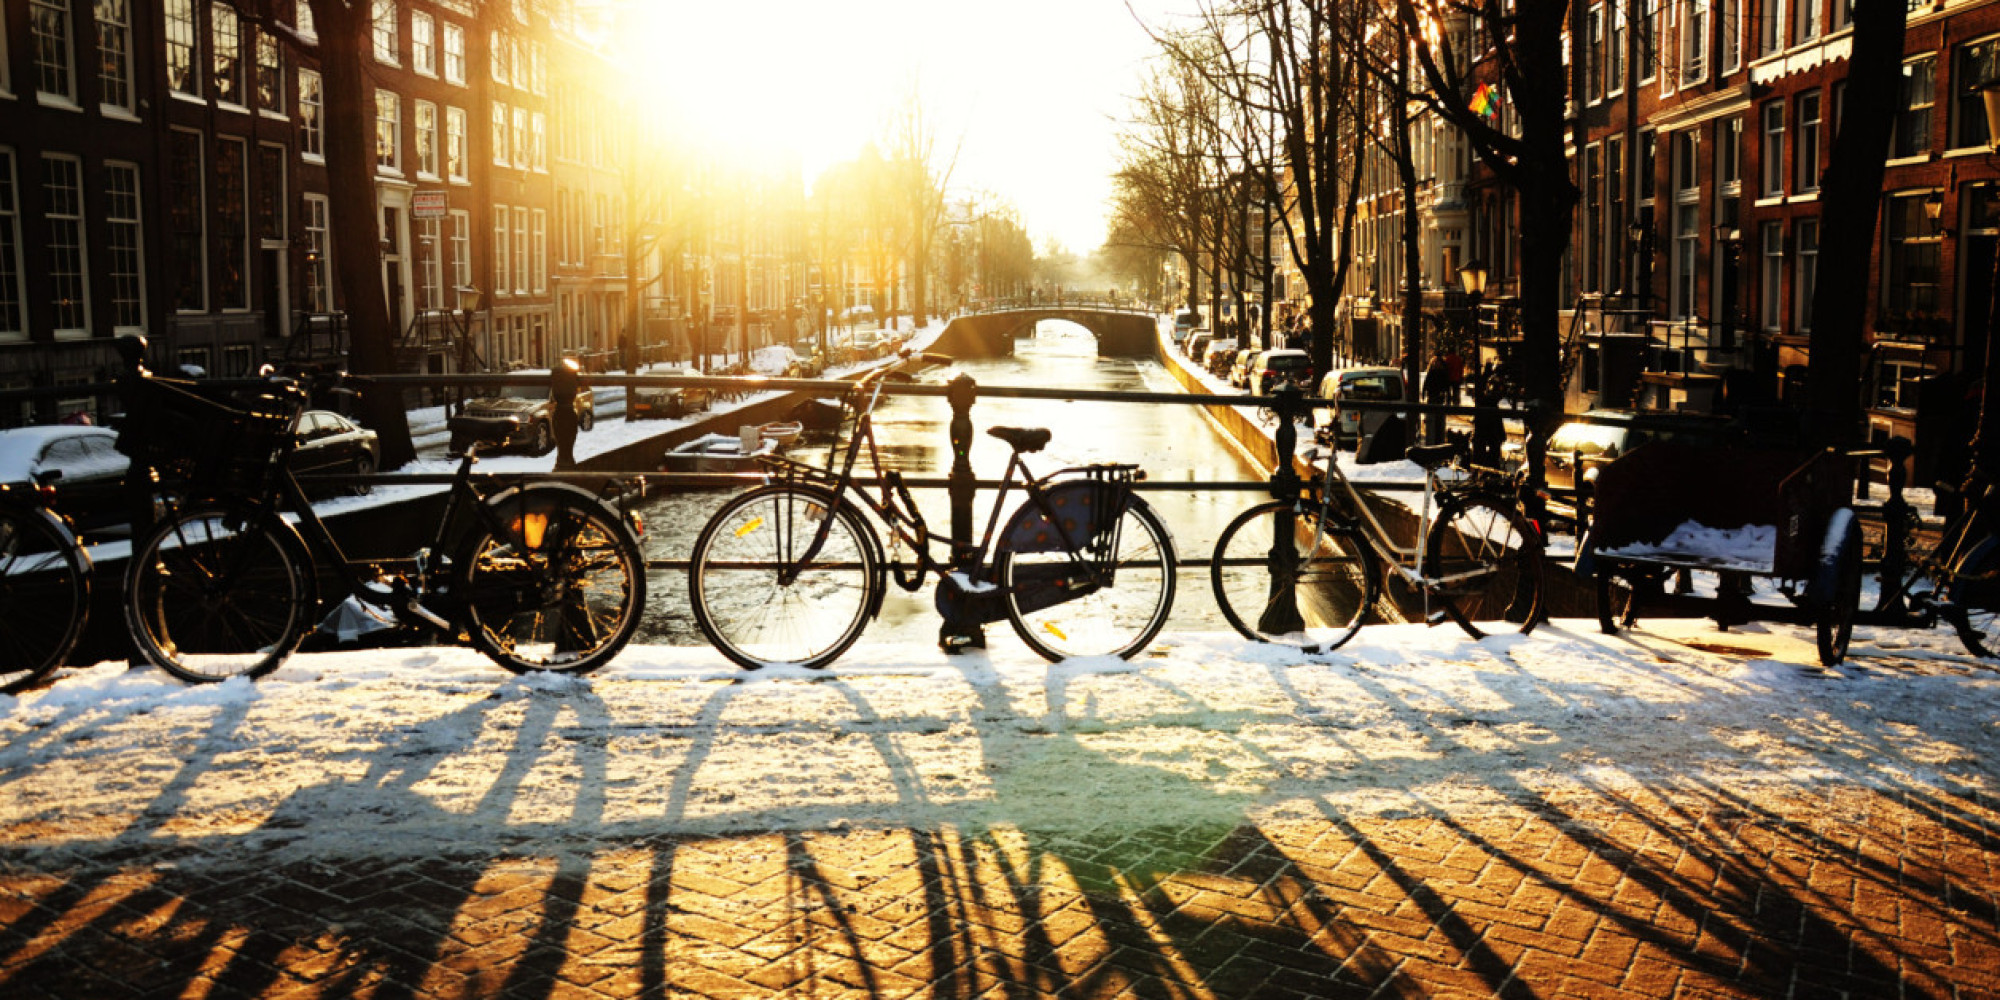 Bicycles at dusk